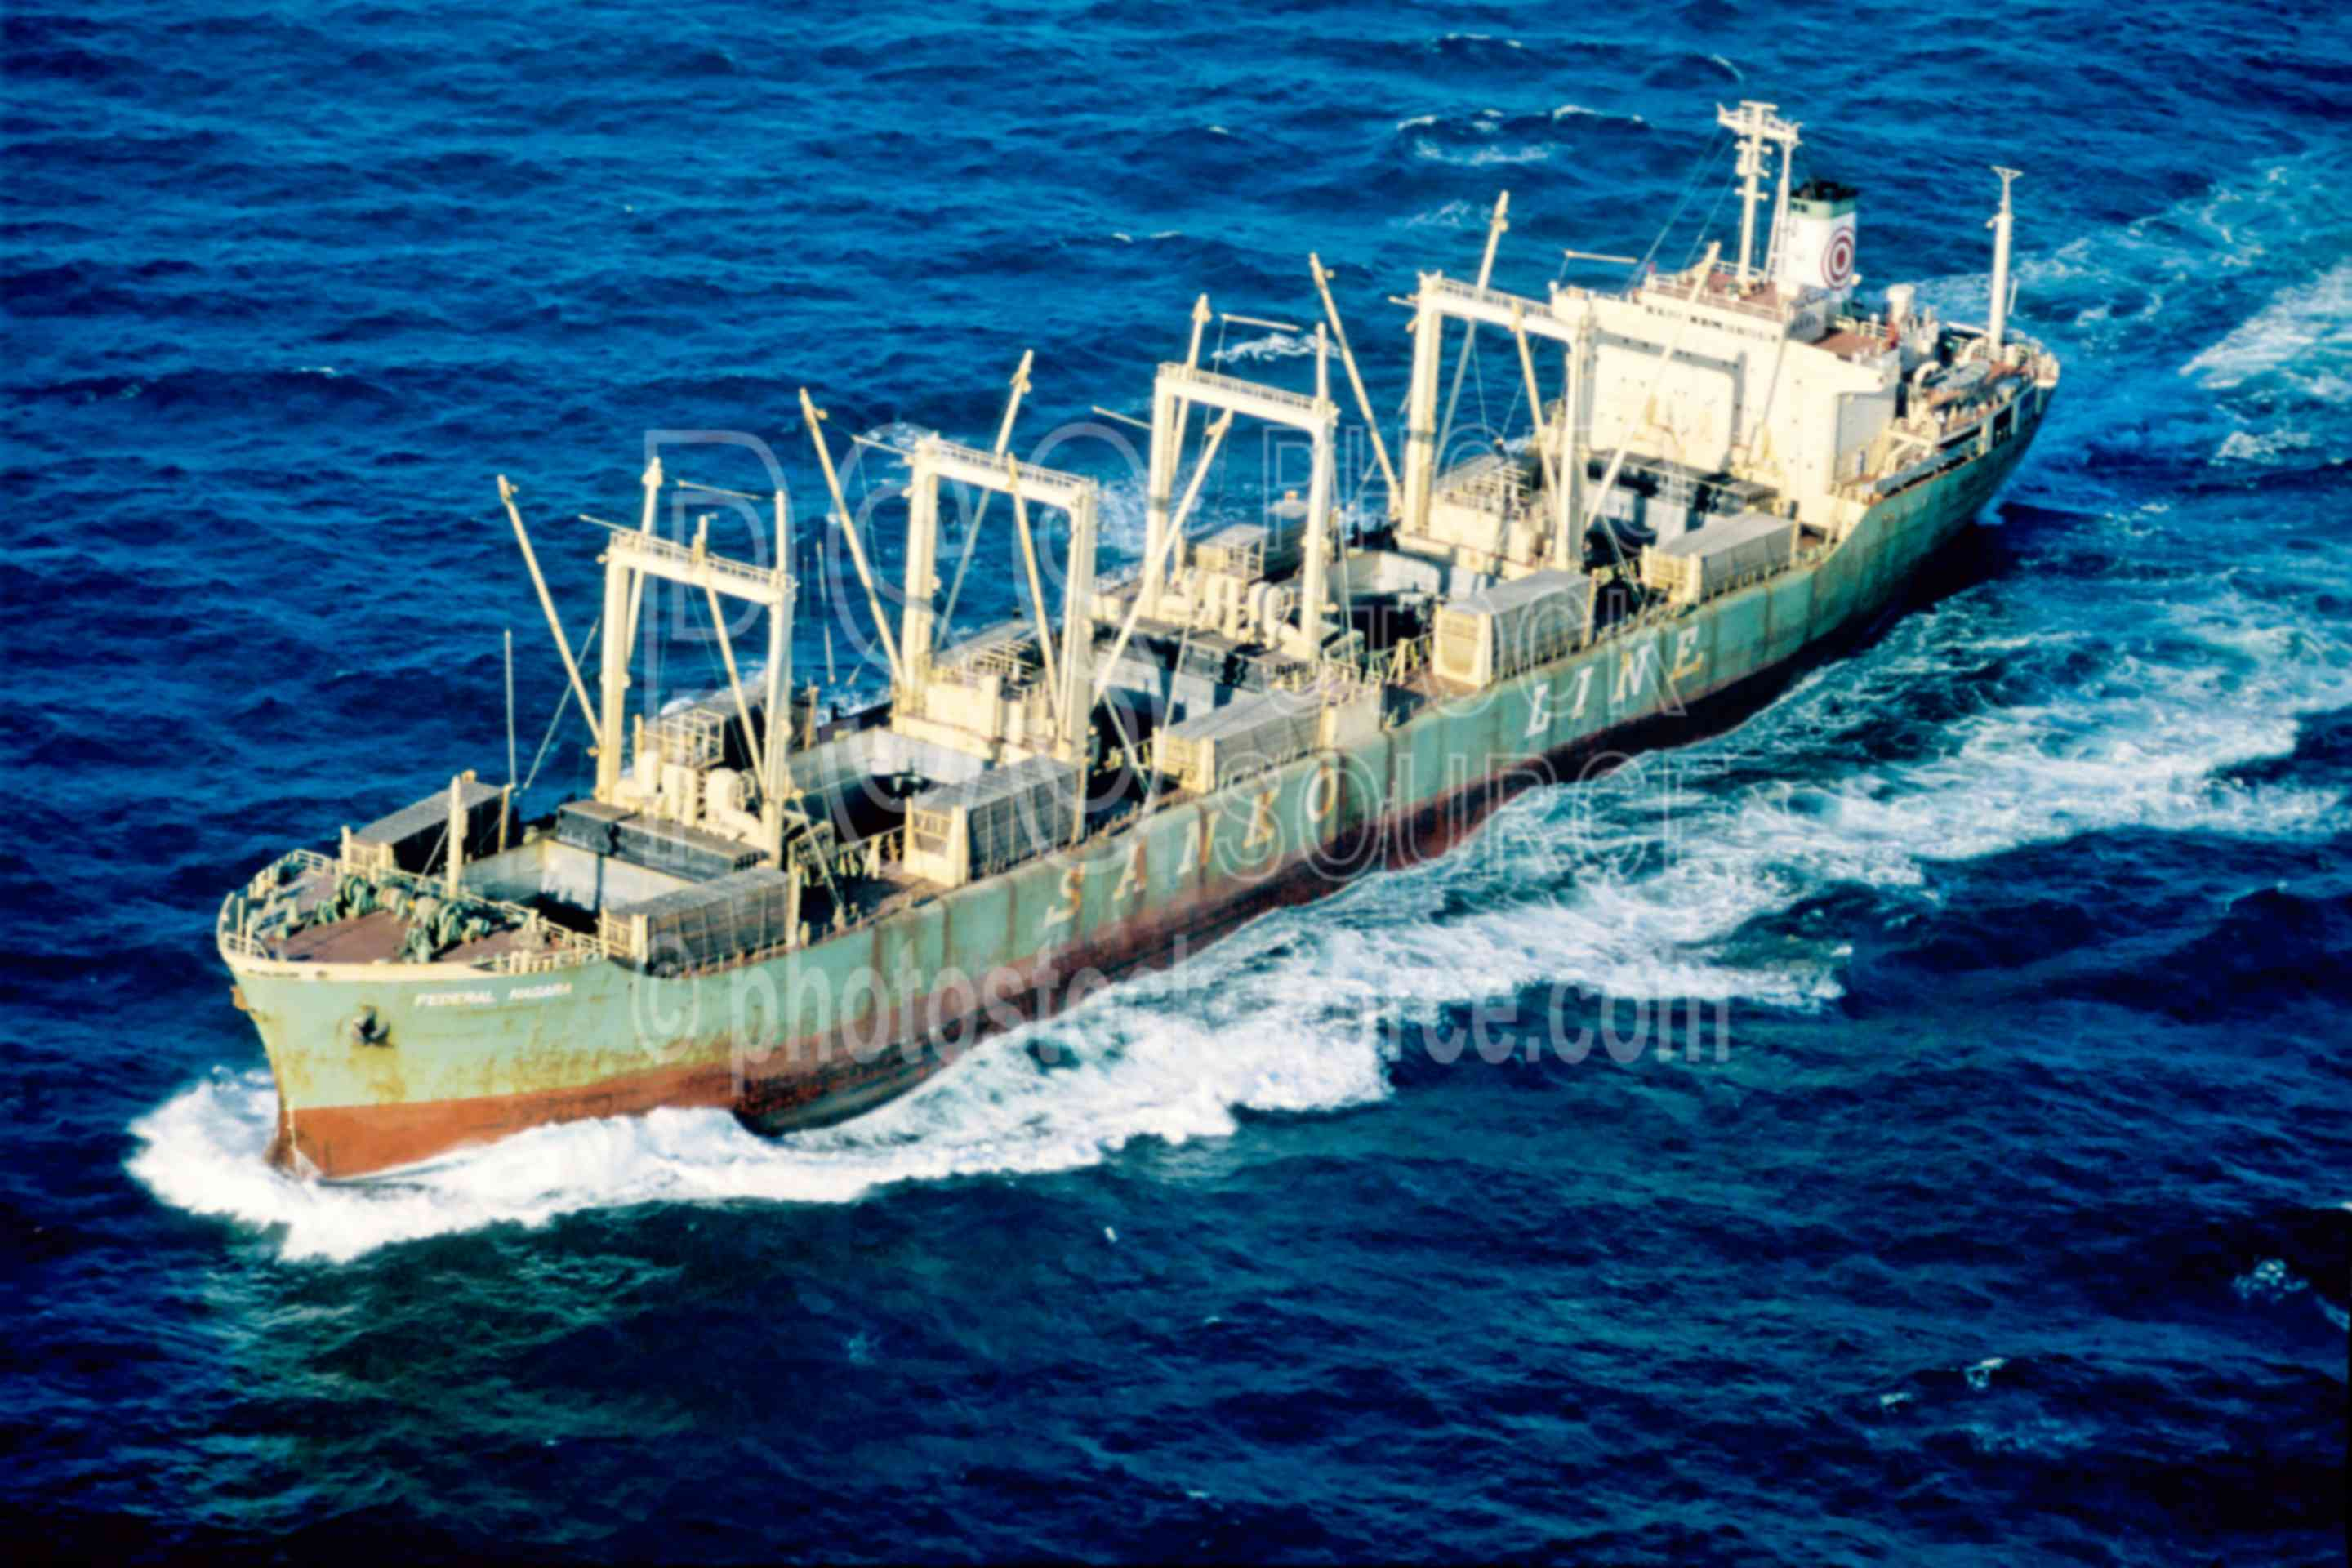 Freighter on the Ocean,freighter,ocean,ship,aerial,boats ships,aeronautics,aerials